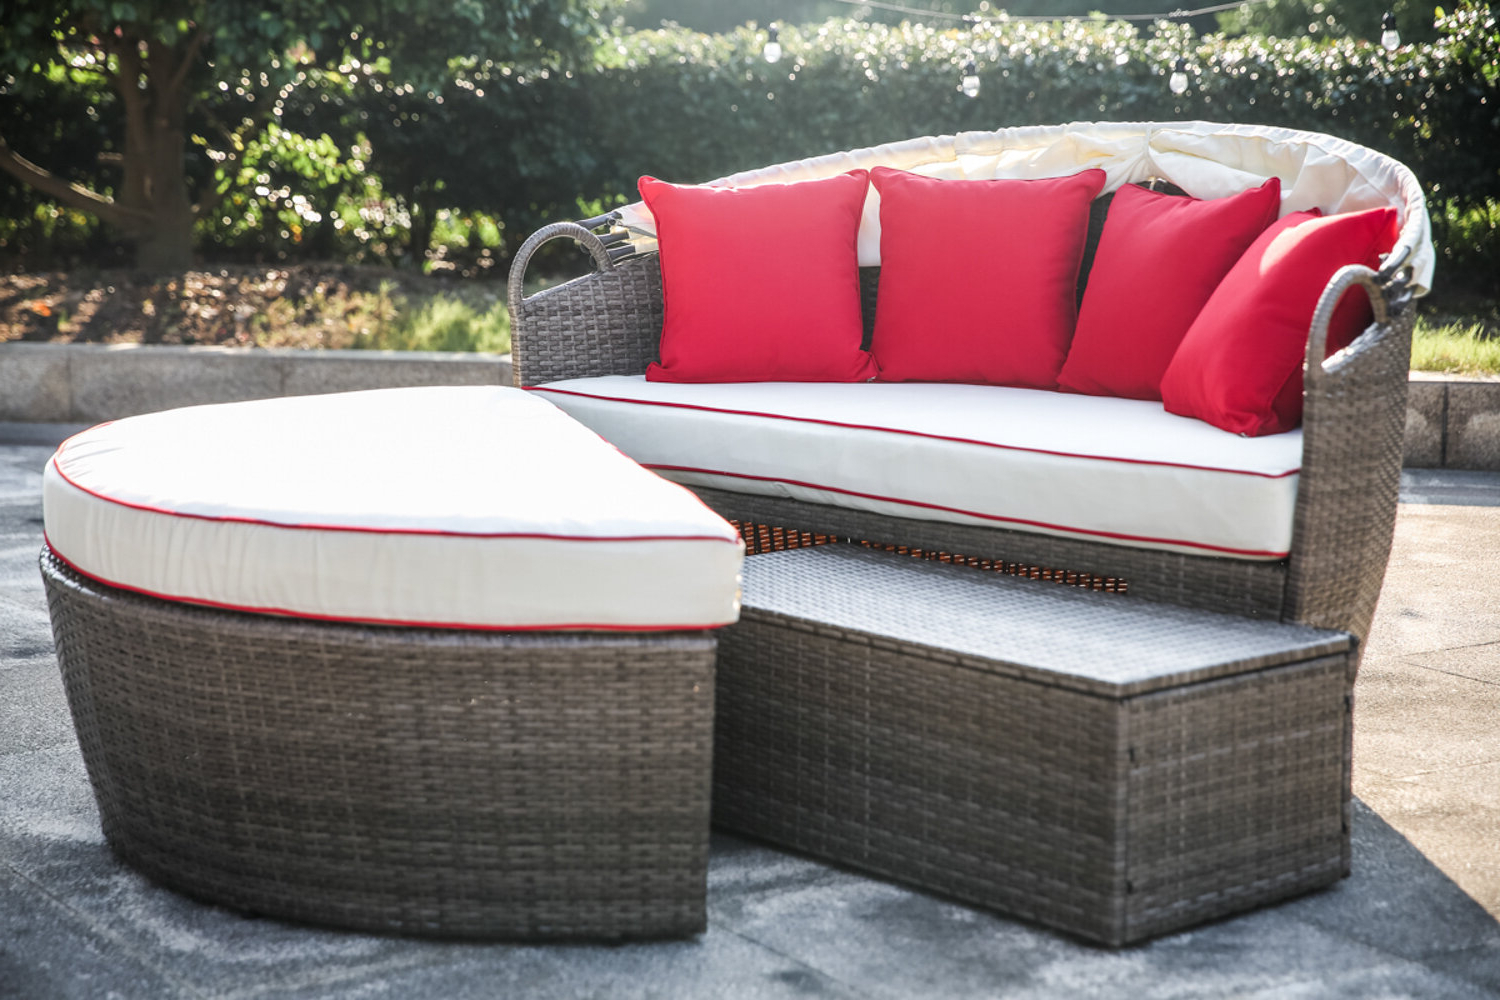 Well Known Fansler Patio Daybed With Cushions Pertaining To Brentwood Canopy Patio Daybeds With Cushions (View 13 of 25)